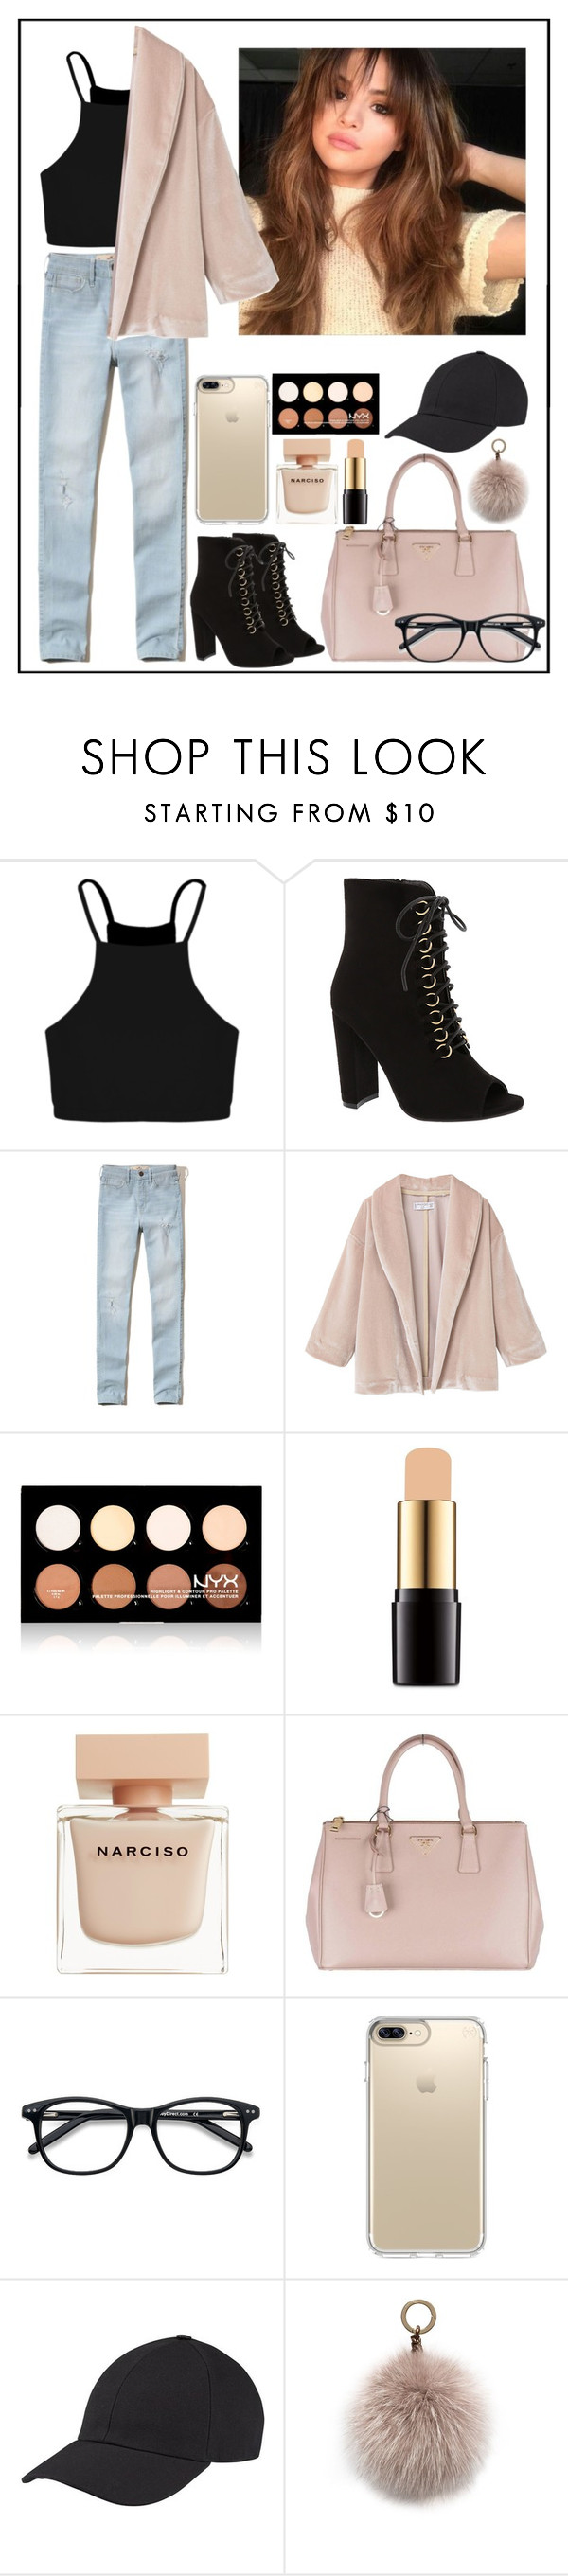 """Run away from paparazzi - day 1"" by maggie1314 ❤ liked on Polyvore featuring Boohoo, Top Moda, Hollister Co., MANGO, NYX, Lancôme, Narciso Rodriguez, Prada, Ace and Speck"